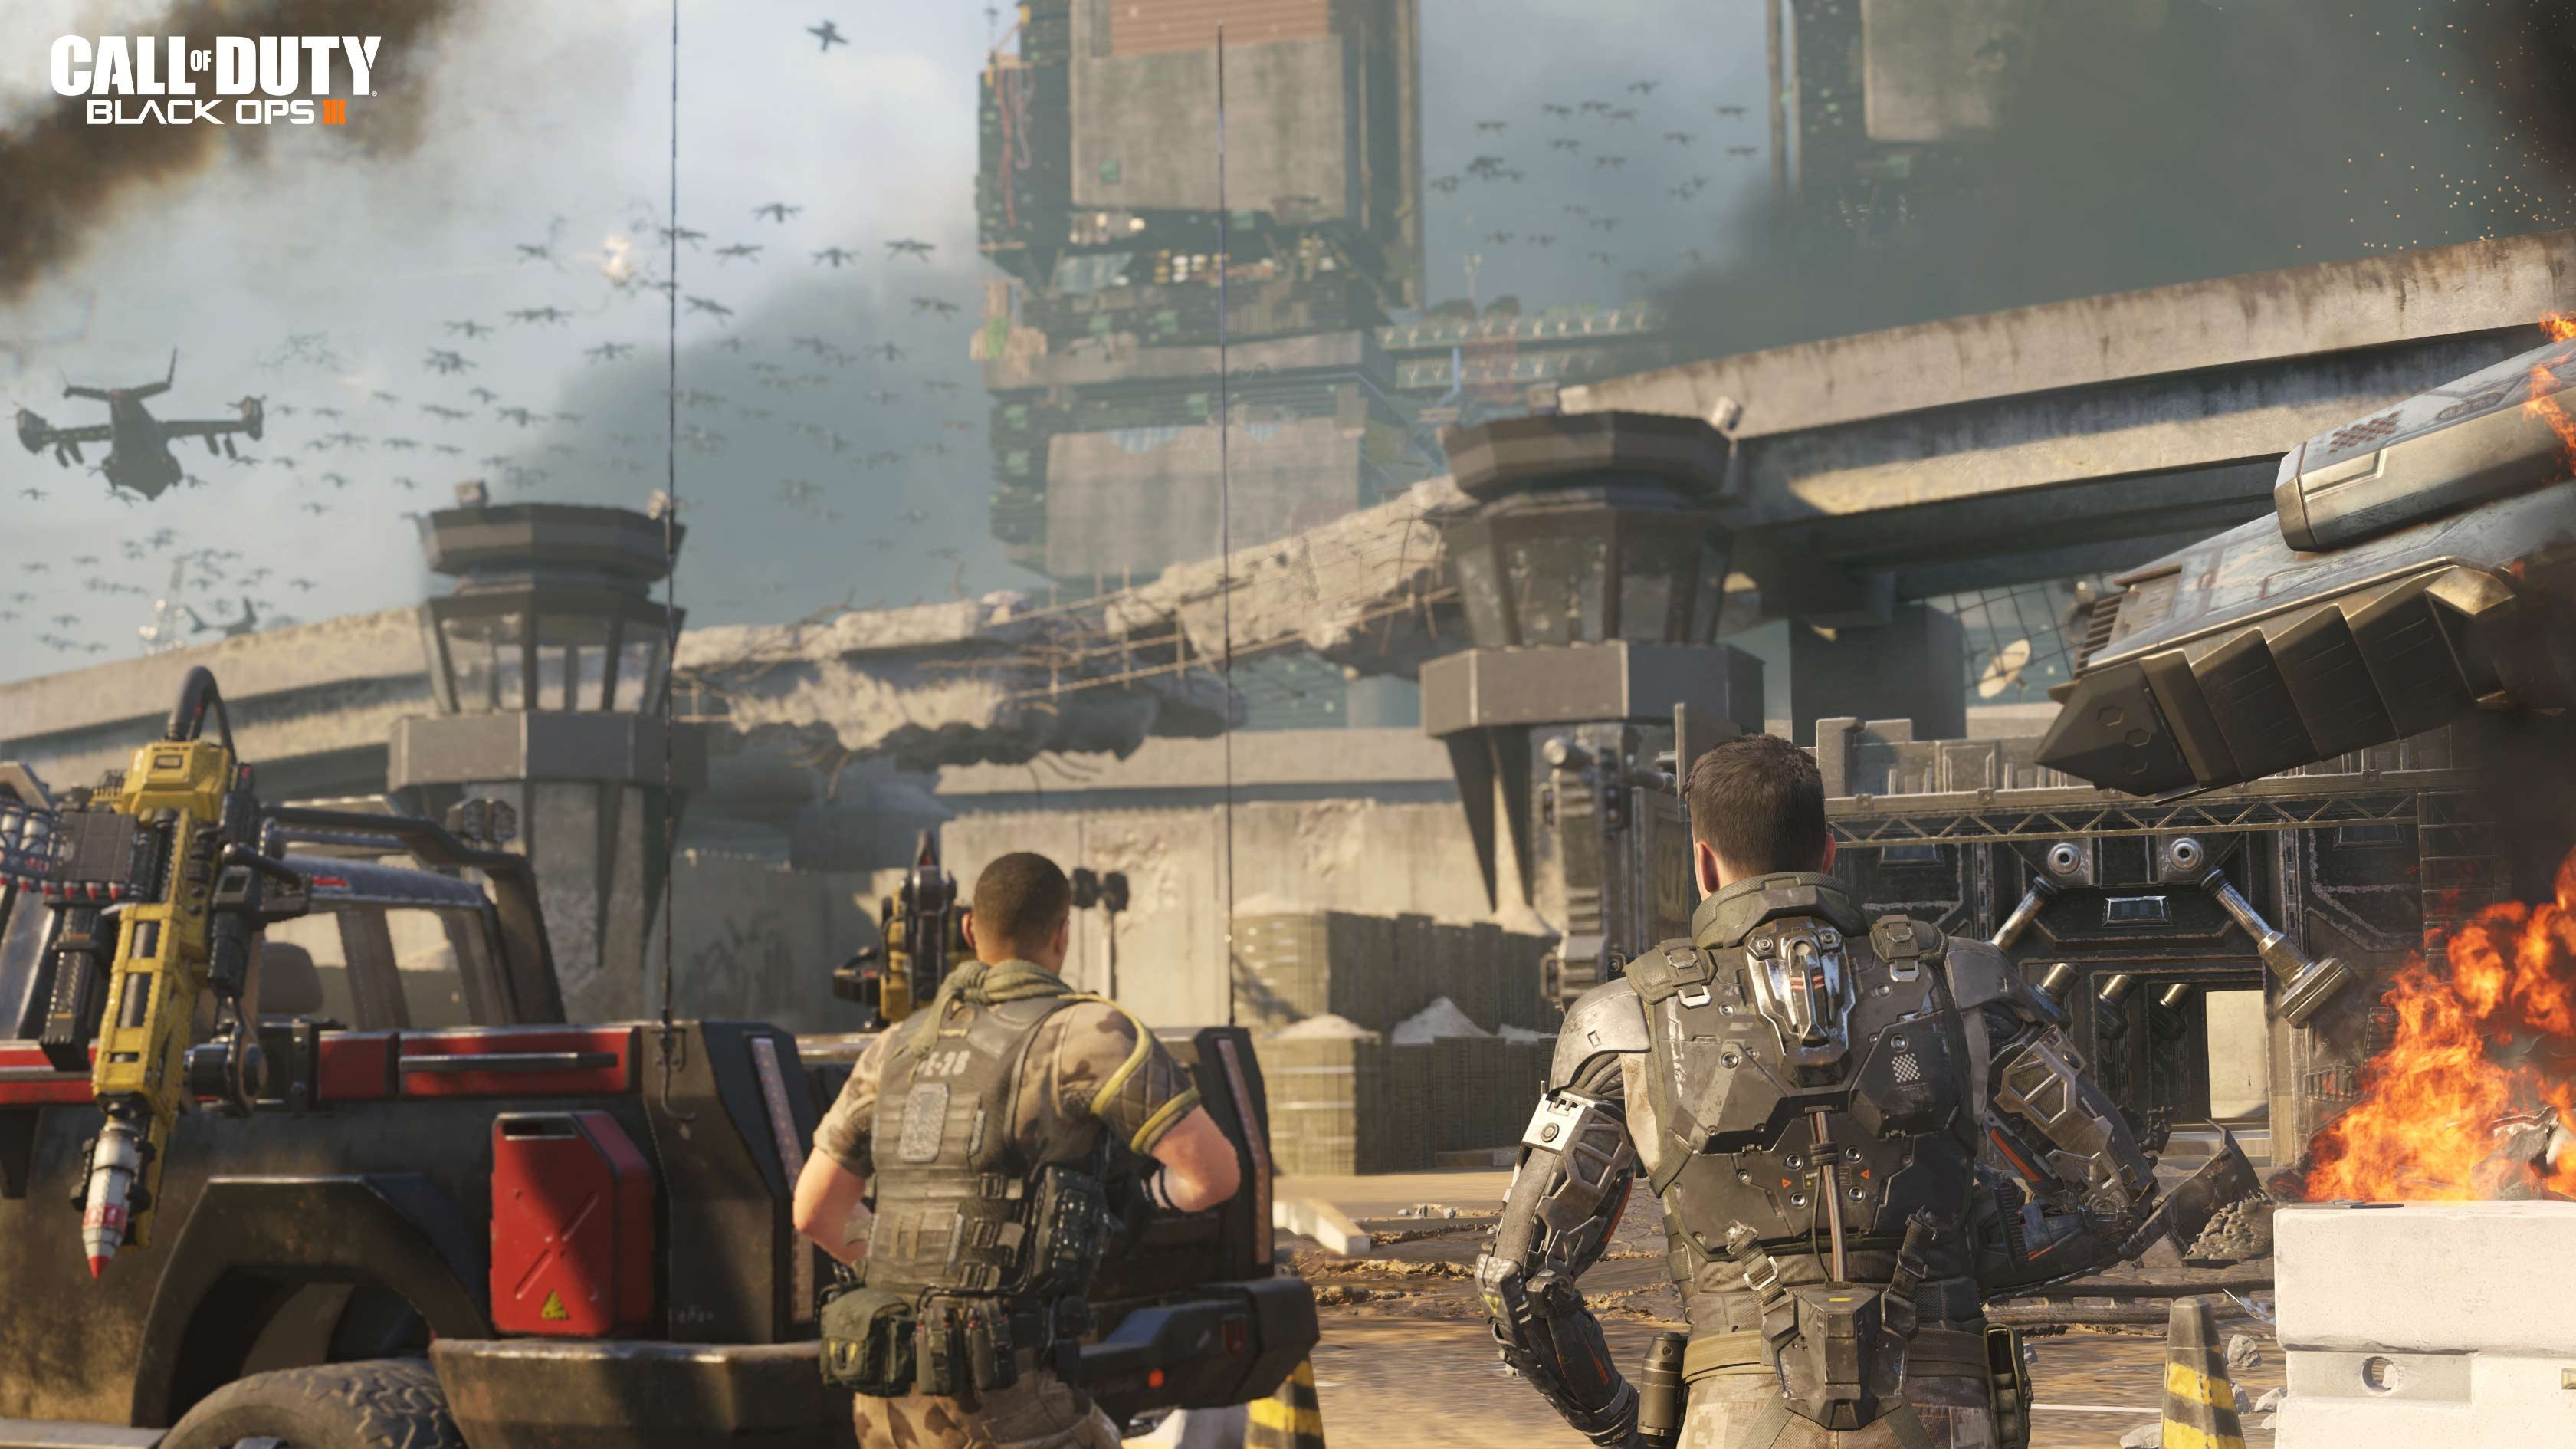 Call of Duty Black Ops 3 is the latest game in Activision Blizzard's perennial billion dollar shooter franchise